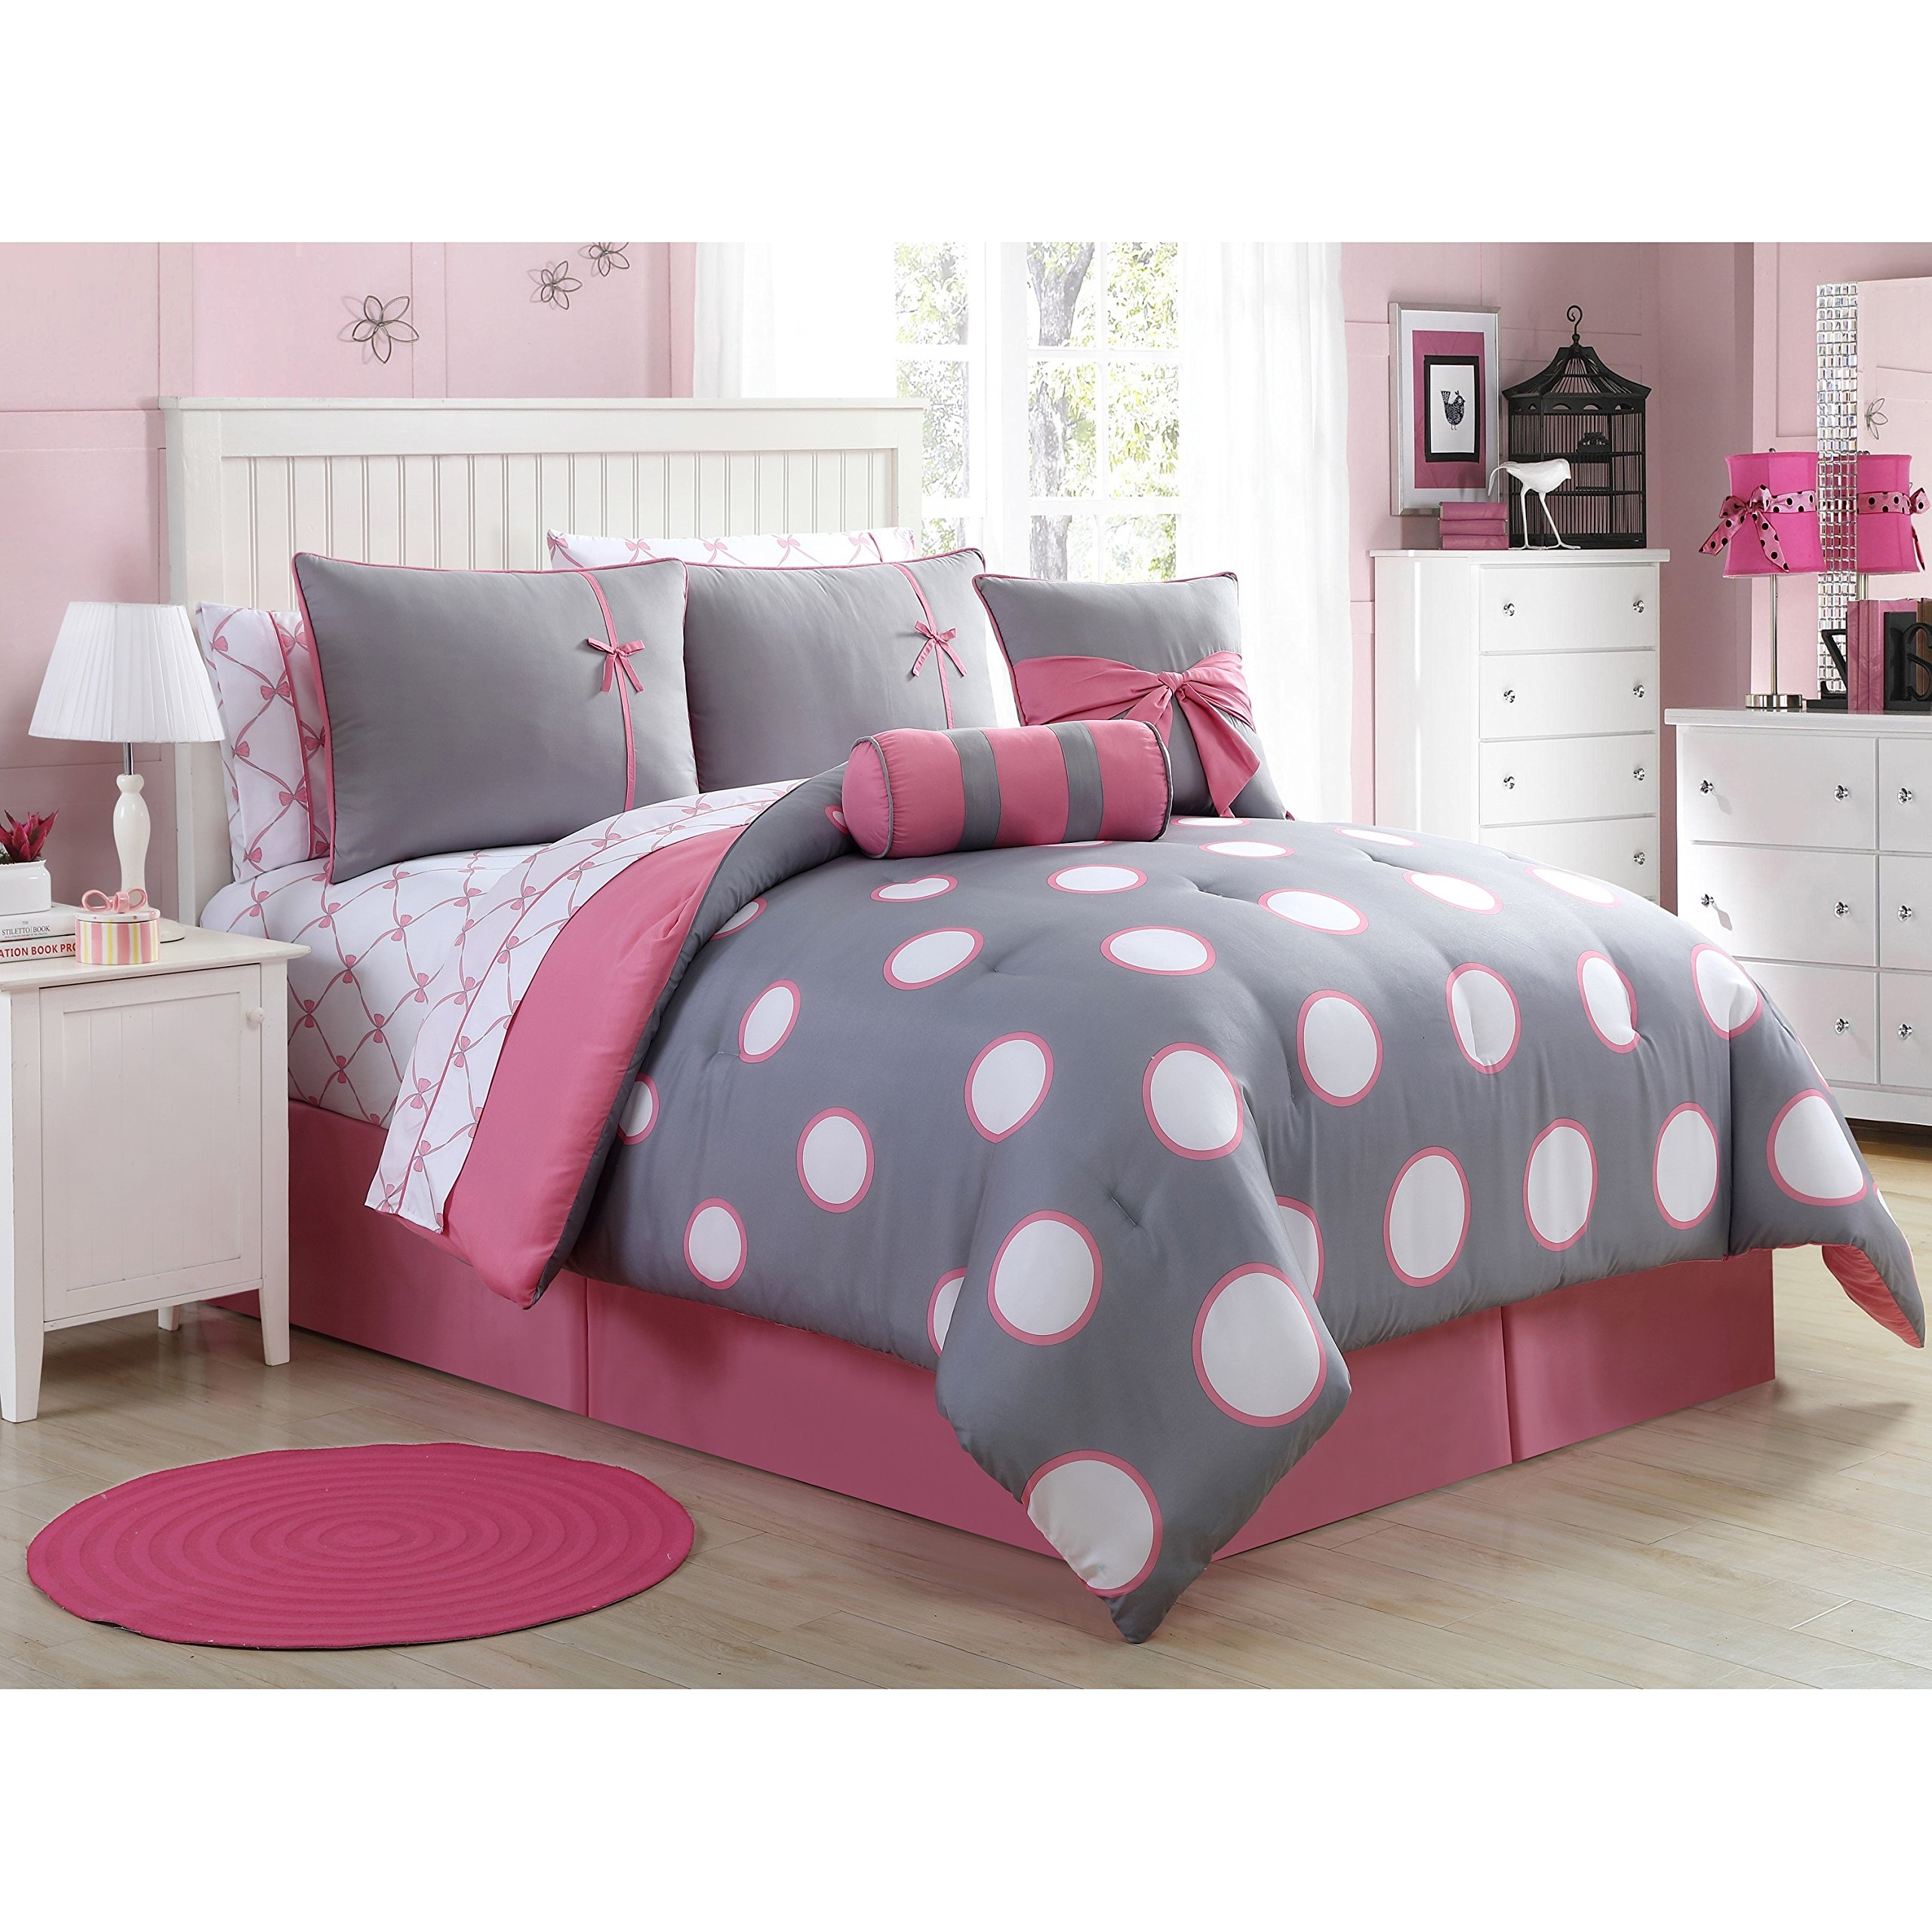 Teen Girl Comforter Sets Pink and Gray Polka Dot Bed in a Bag with Designer Home Sleep Mask (Full Pink/Gray) by VC / DH